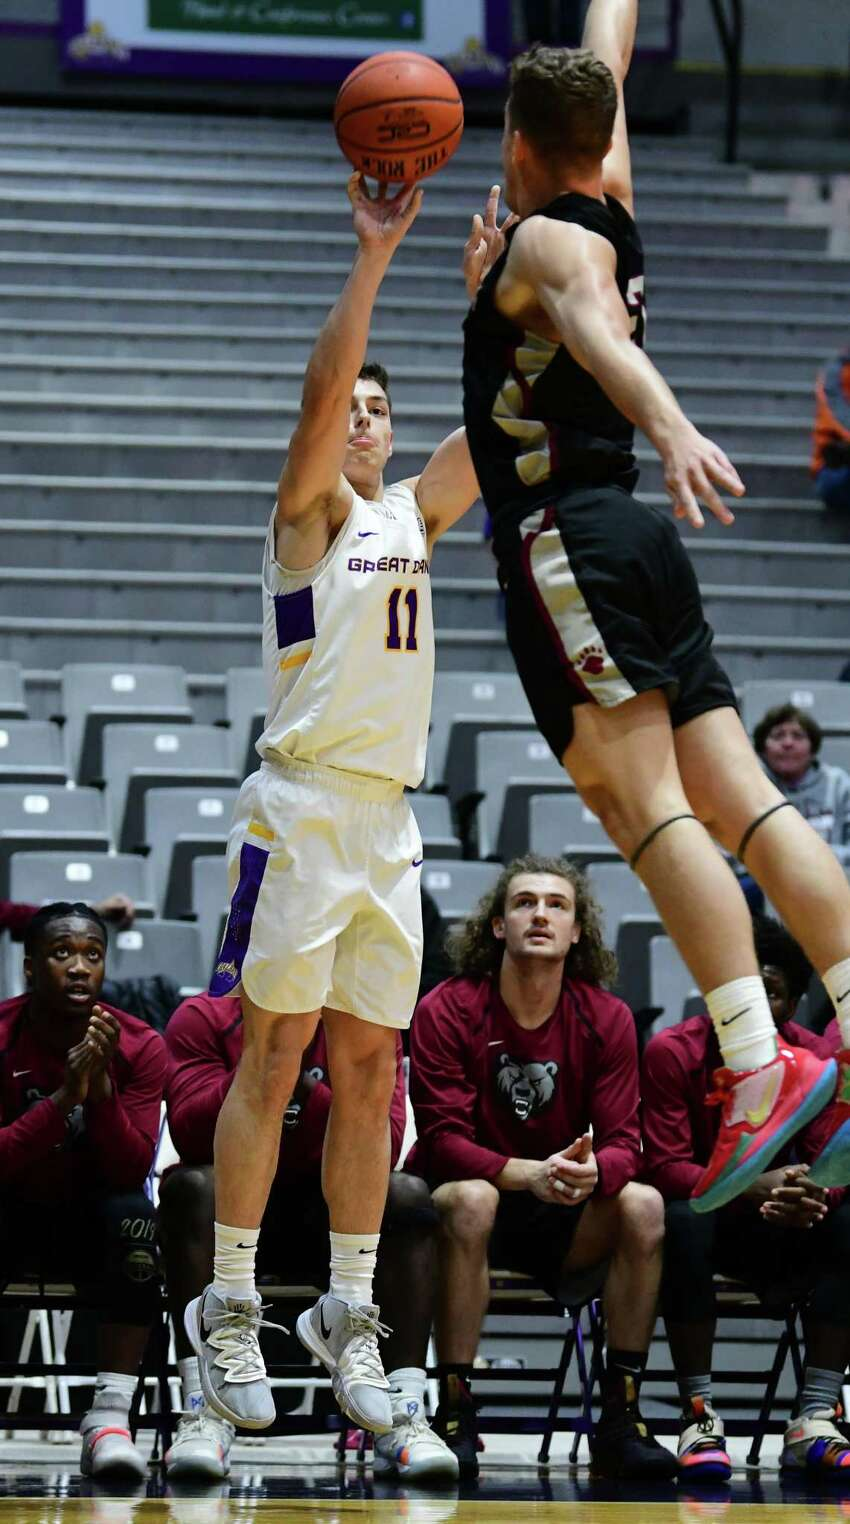 University at Albany's Cameron Healy puts down a three-pointer against Potsdam's Aaron Armstrong during a basketball game at SEFCU Arena on Tuesday, Nov. 19, 2019 in Albany, N.Y. (Lori Van Buren/Times Union)